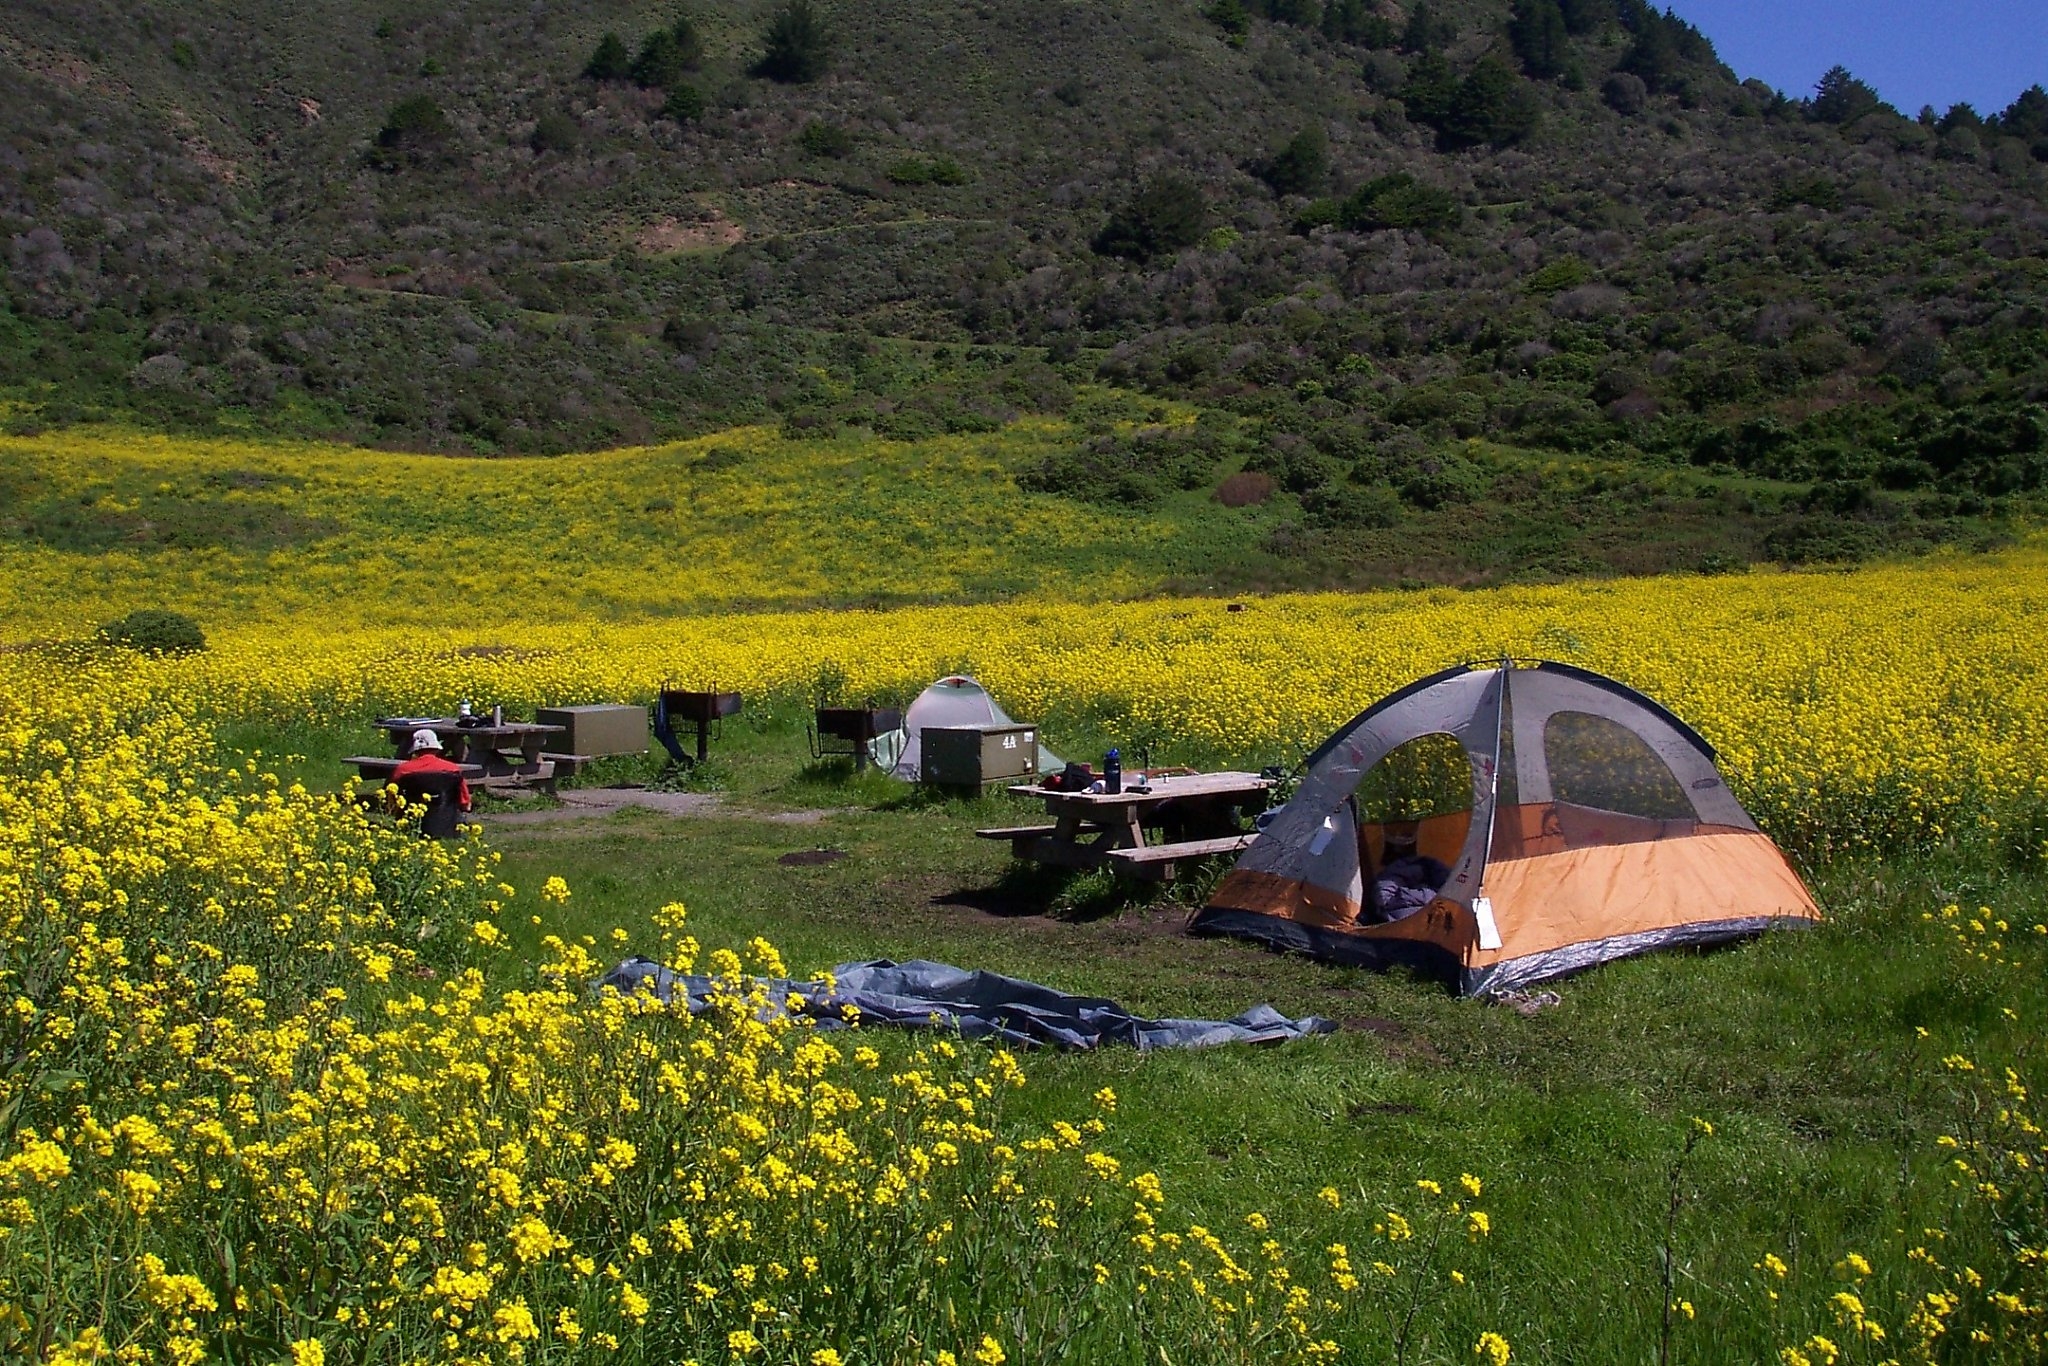 OK, California campers: Ready, set, reserve